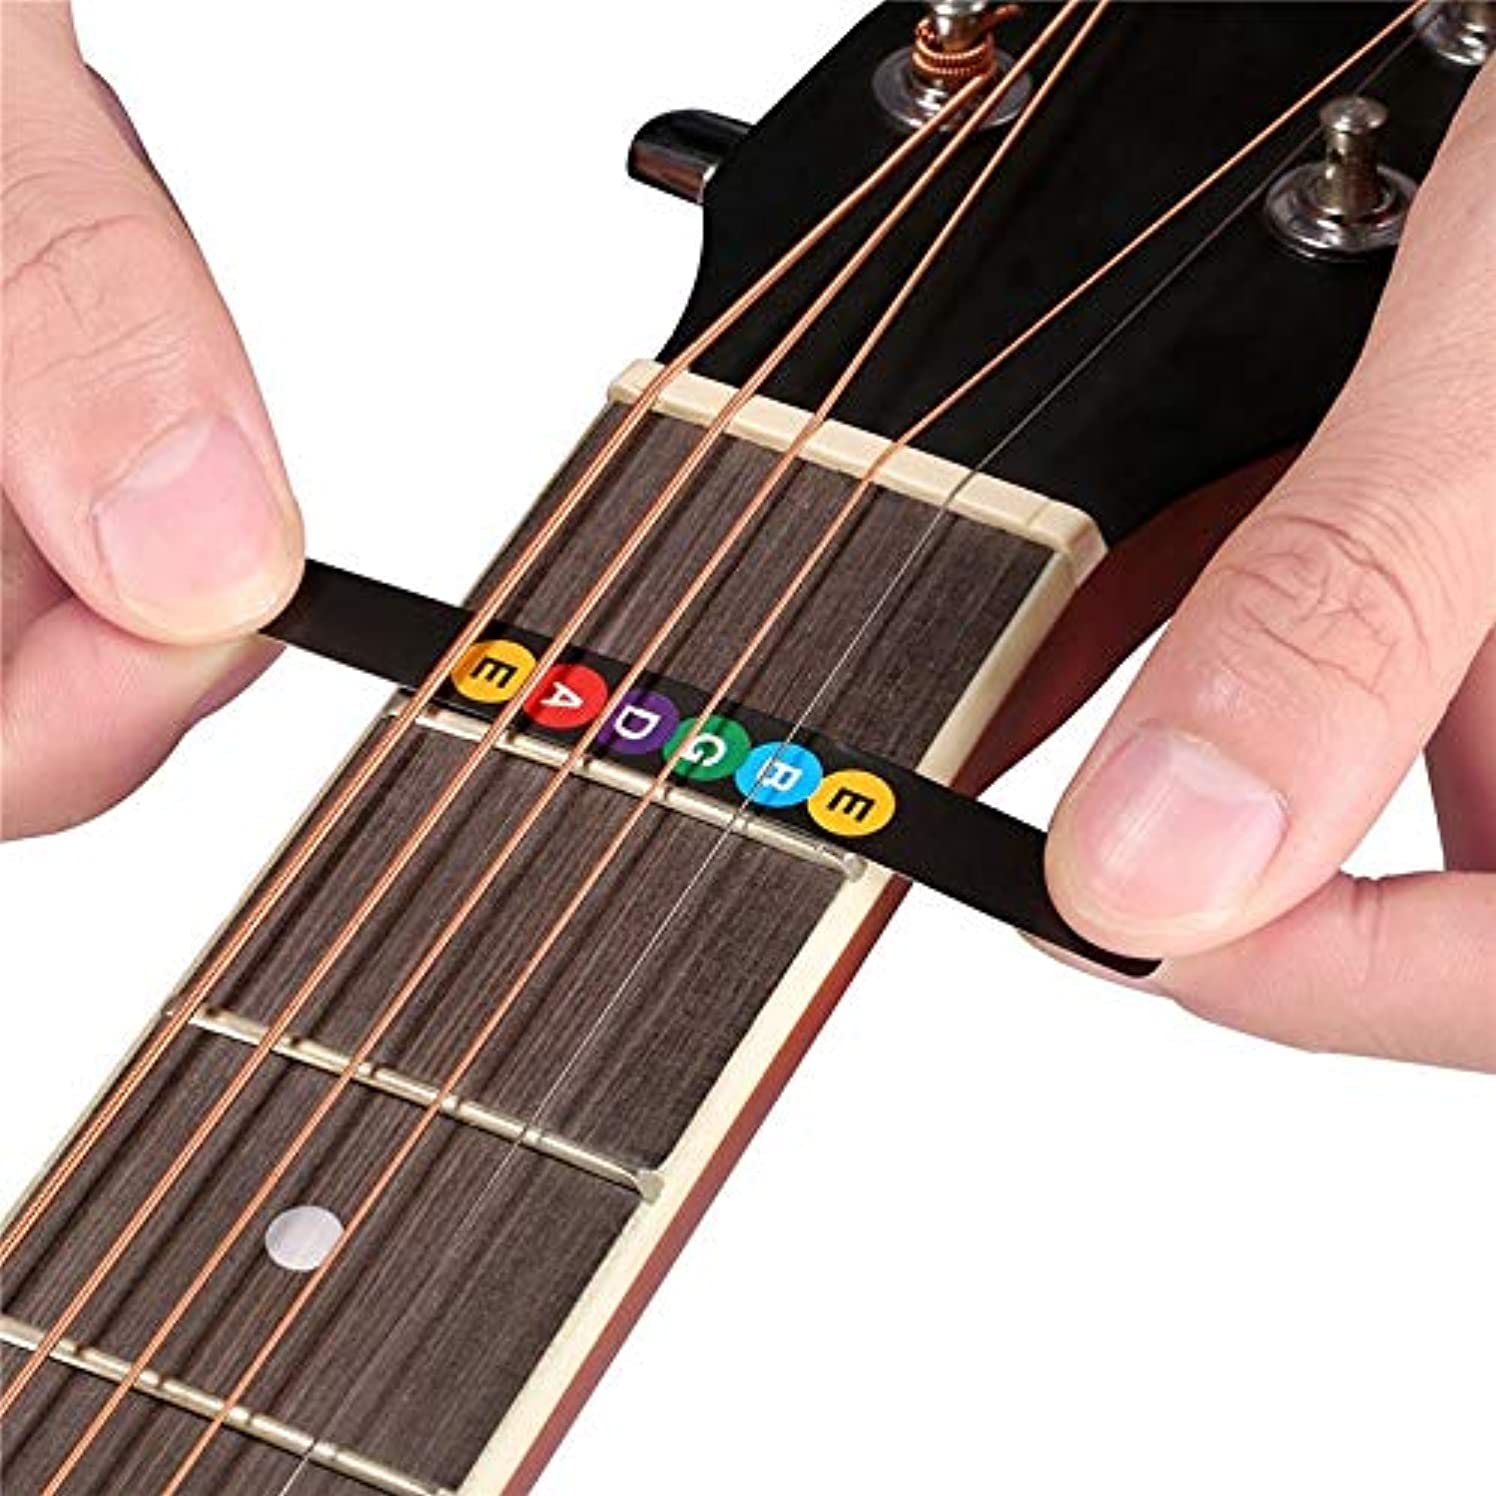 Lessonmart Colorful Guitar Fretboard Note Decal Beginners Fingerboard Sticker Label Map Frets Scale for 6-String Acoustic or Electric